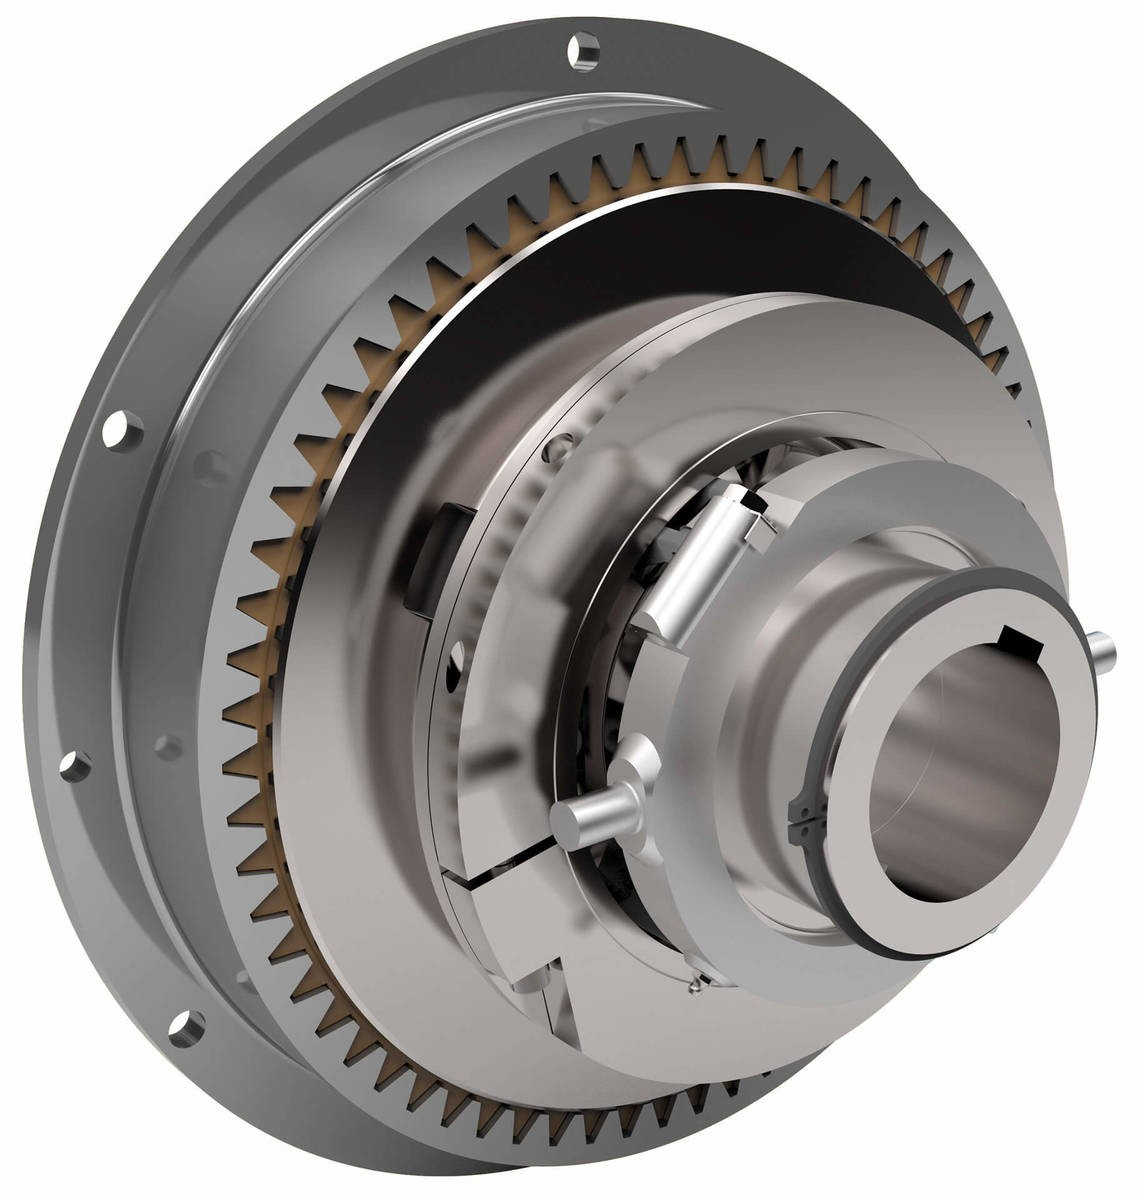 Desch Planox® PM mechanically actuated   Multi Plate Friction Clutch Image